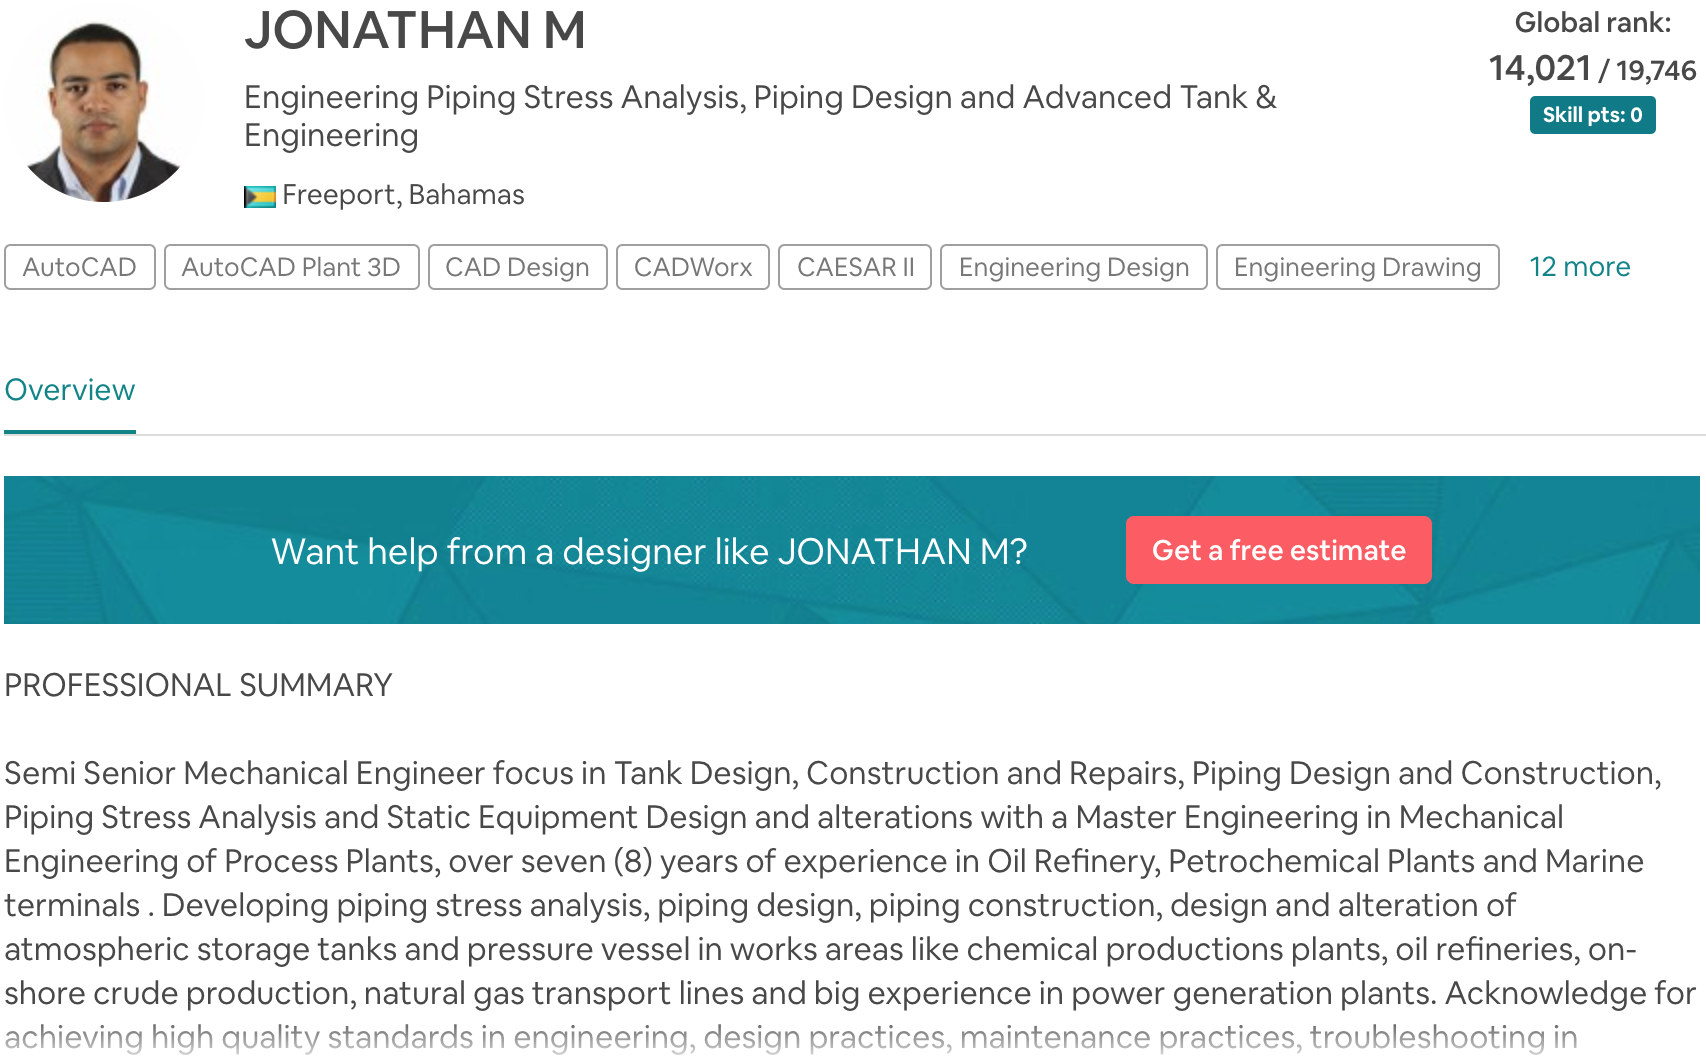 JONATHAN M Engineering Piping Stress Analysis, Piping Design and Advanced Tank and Engineering